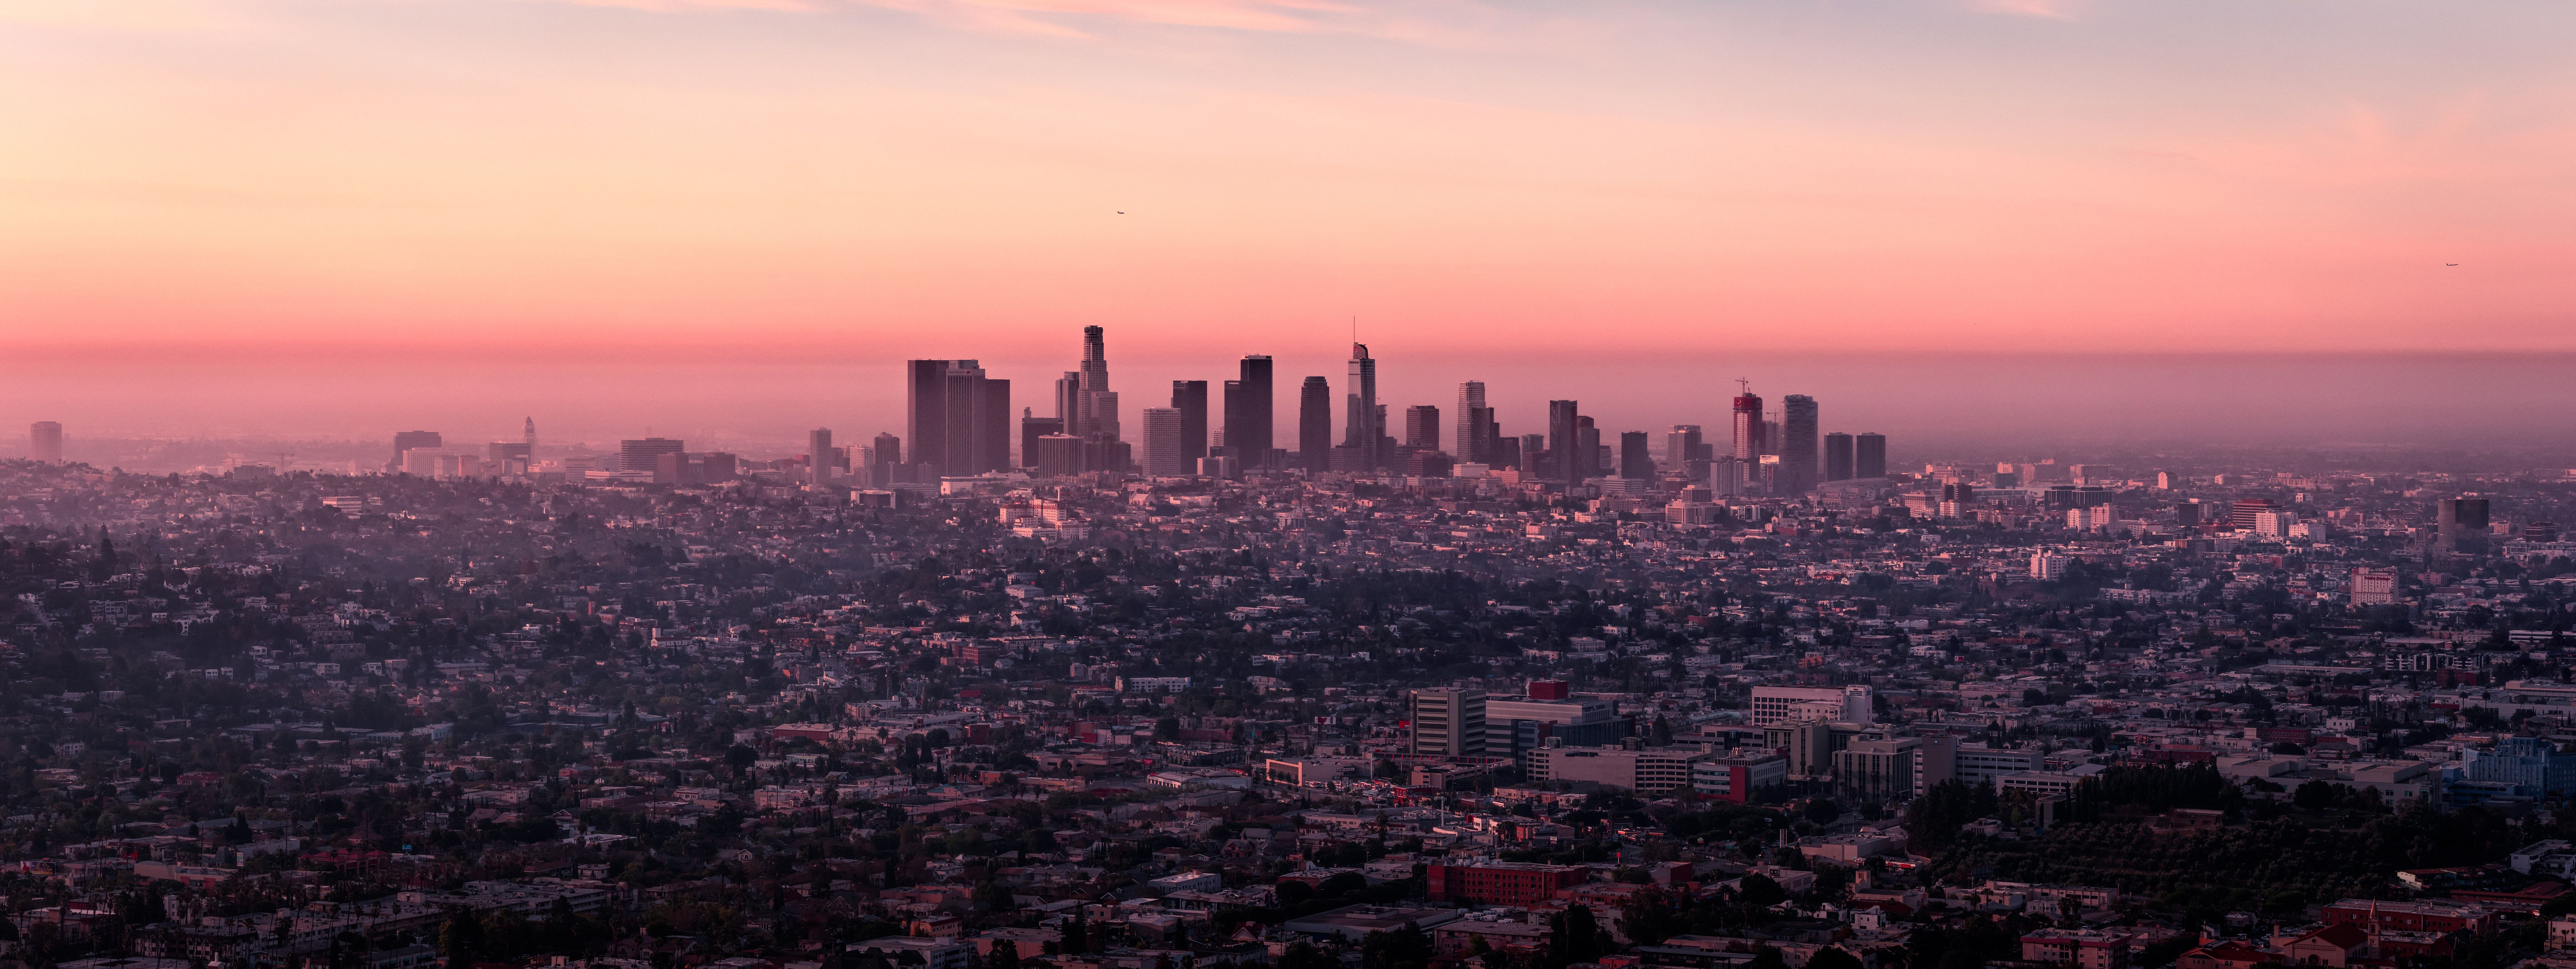 Griffith Observatory Los Angeles United States 10633 4000 Music Indieartist Chicago Los Angeles Wallpaper Los Angeles Los Angeles Pictures